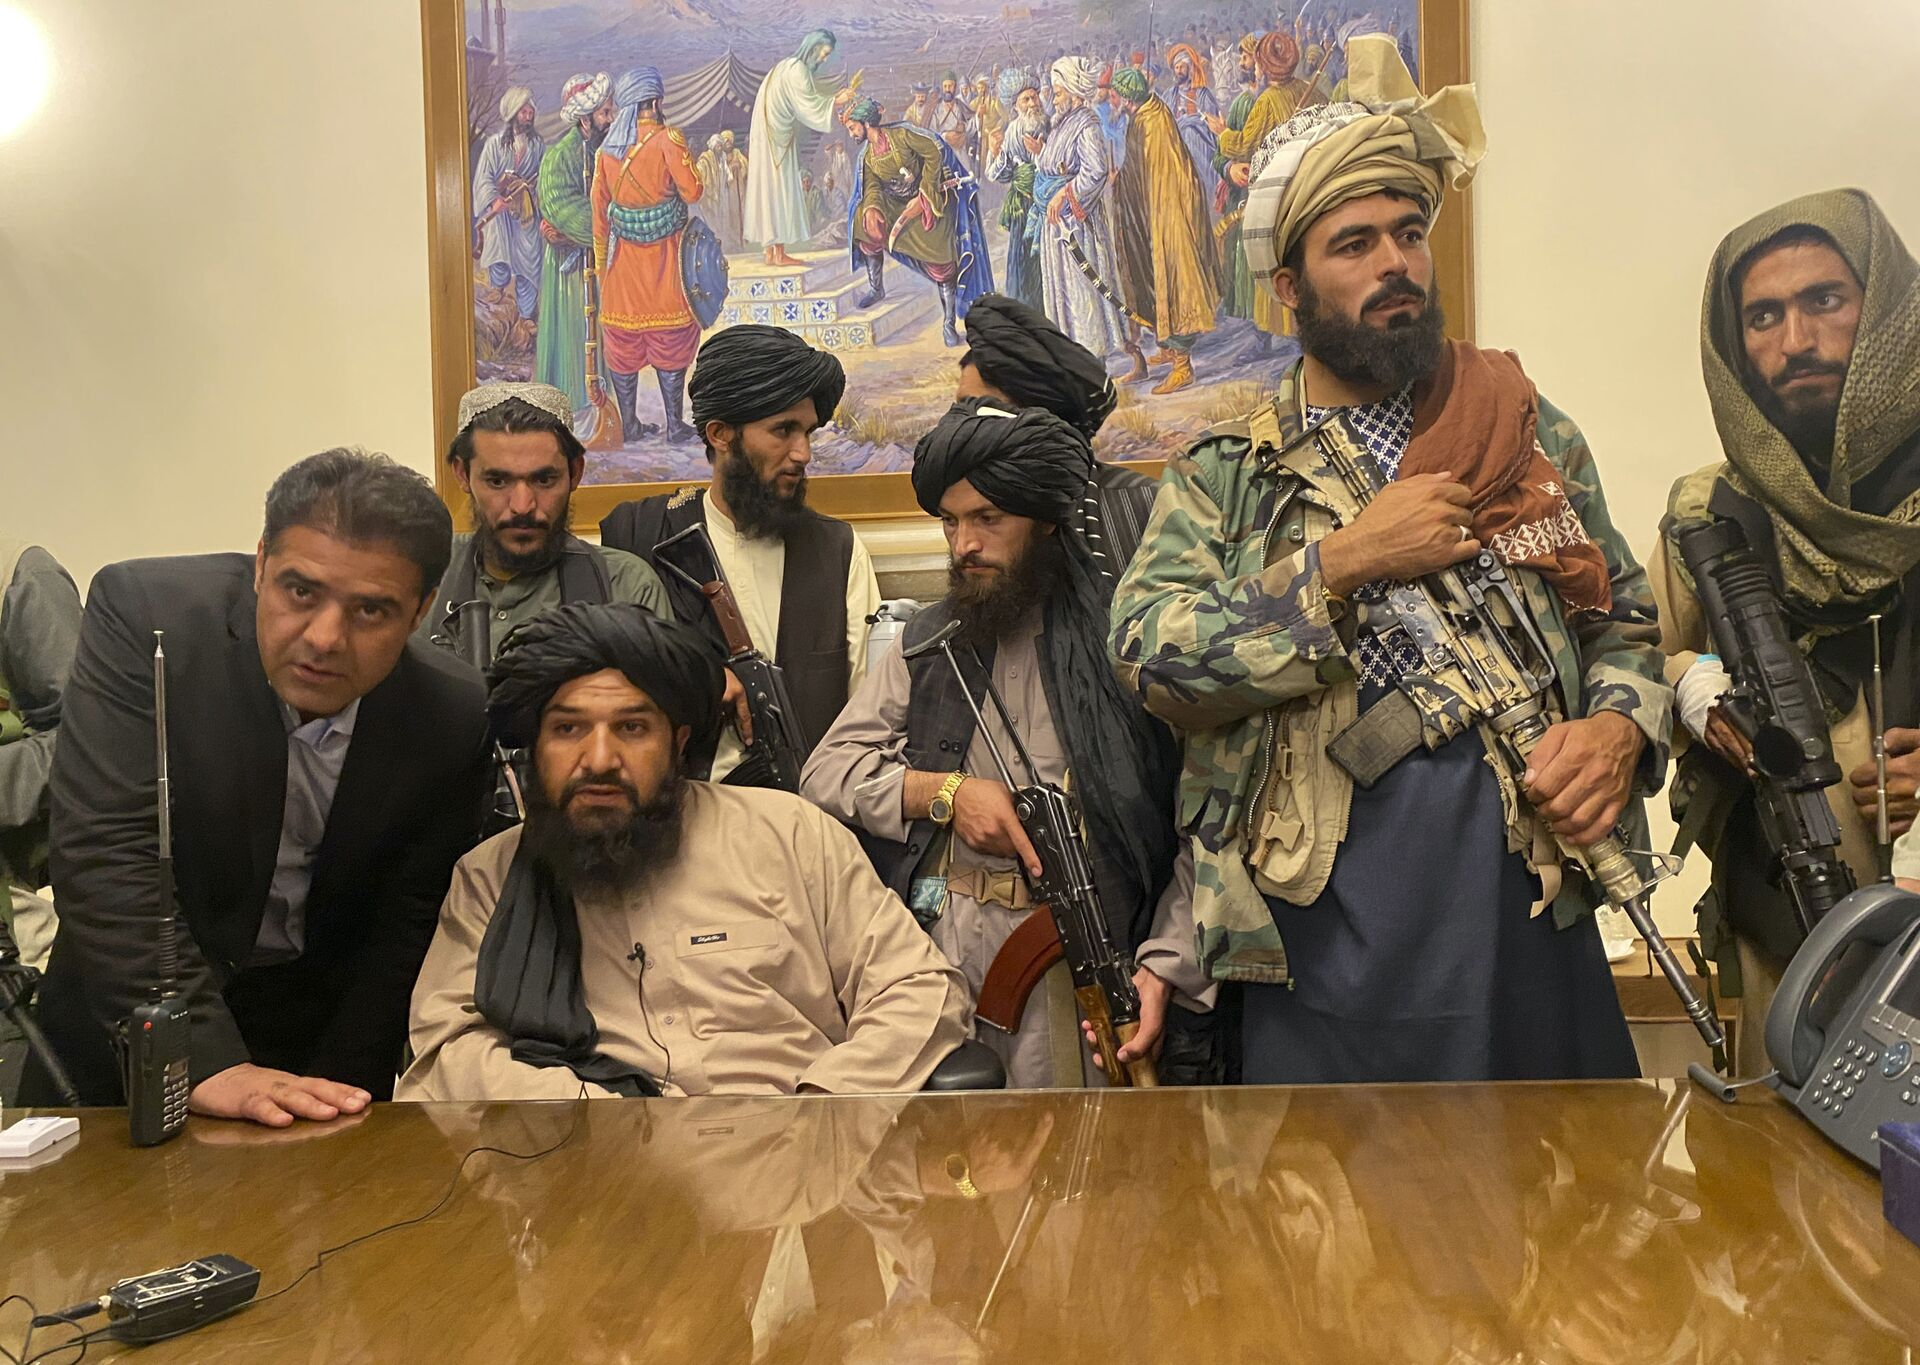 Taliban fighters take control of Afghan presidential palace after the Afghan President Ashraf Ghani fled the country, in Kabul, Afghanistan, Sunday, Aug. 15, 2021. - Sputnik International, 1920, 07.09.2021